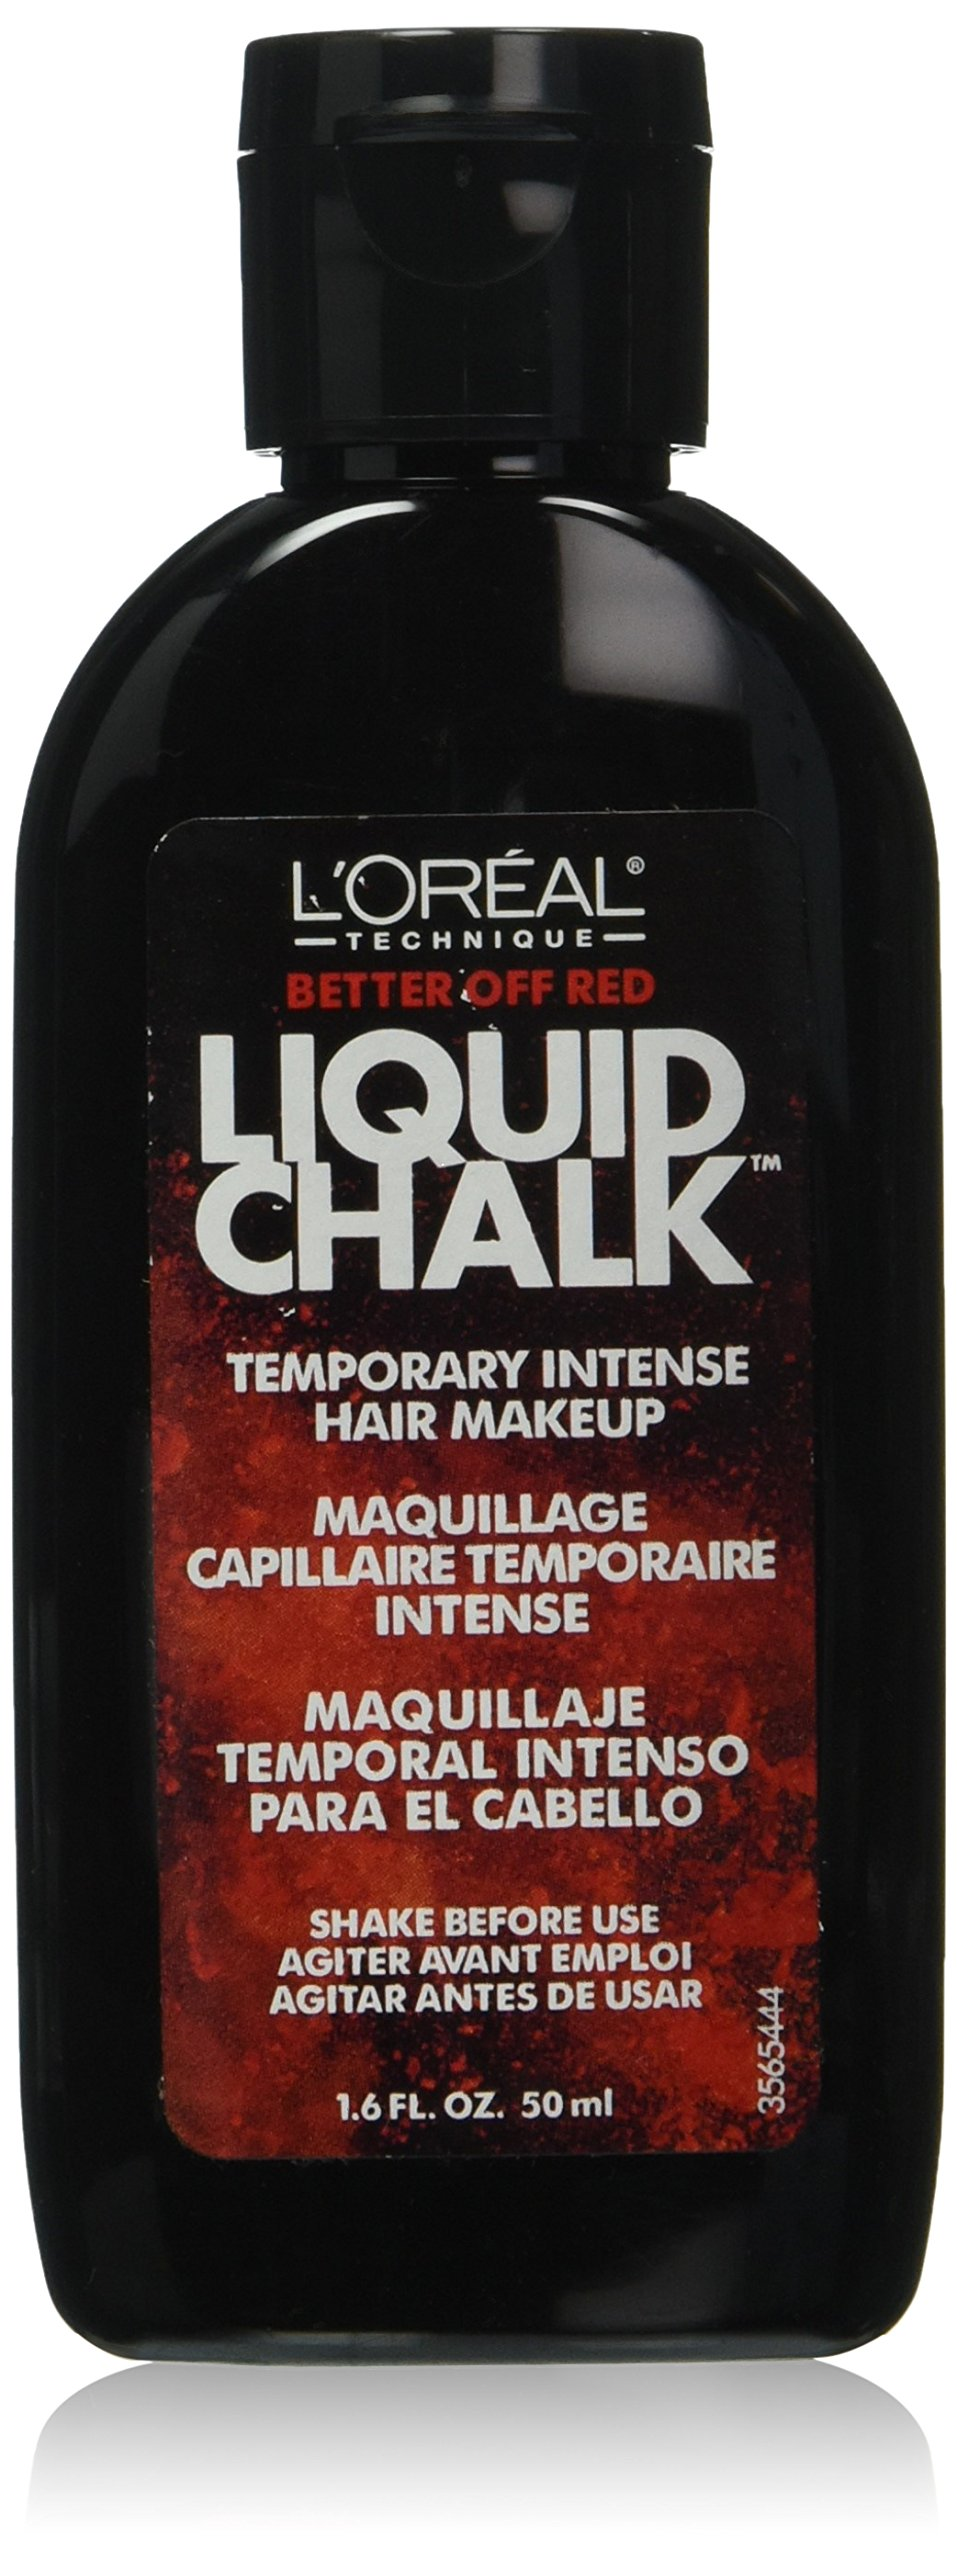 L'Oreal Technique Liquid Chalk Temporary Intense Hair Makeup, Better Off Red, 1.6 Ounce